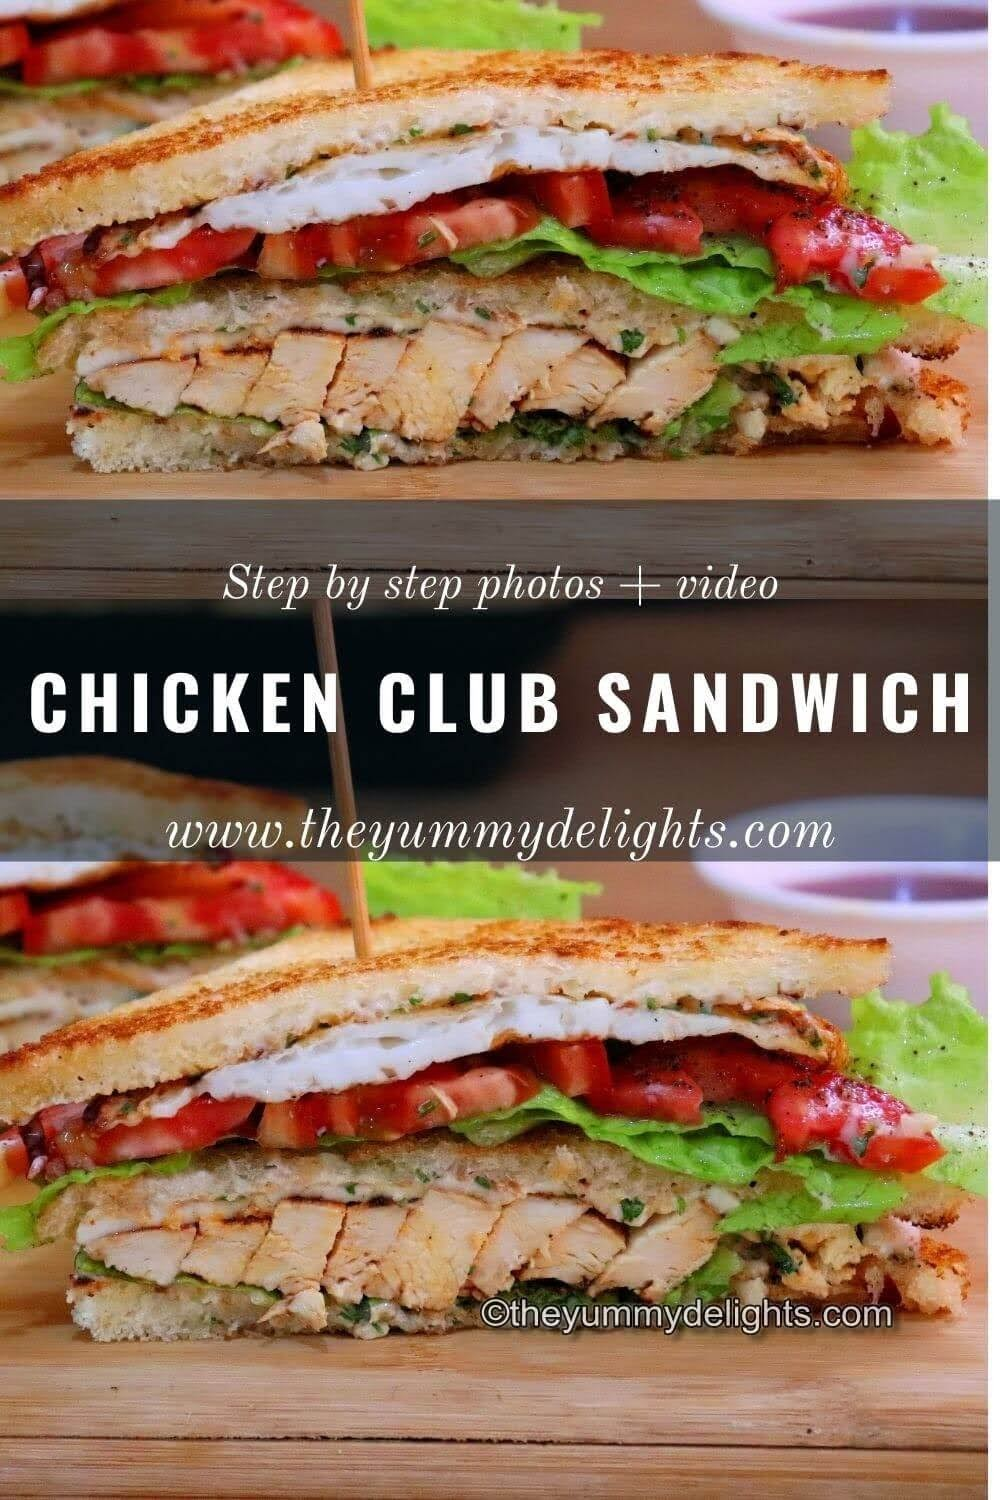 close-up view of chicken club sandwich. All the layers of the club sandwich like grilled chicken, lettuce, tomatoes, fried egg and cheese are visible.